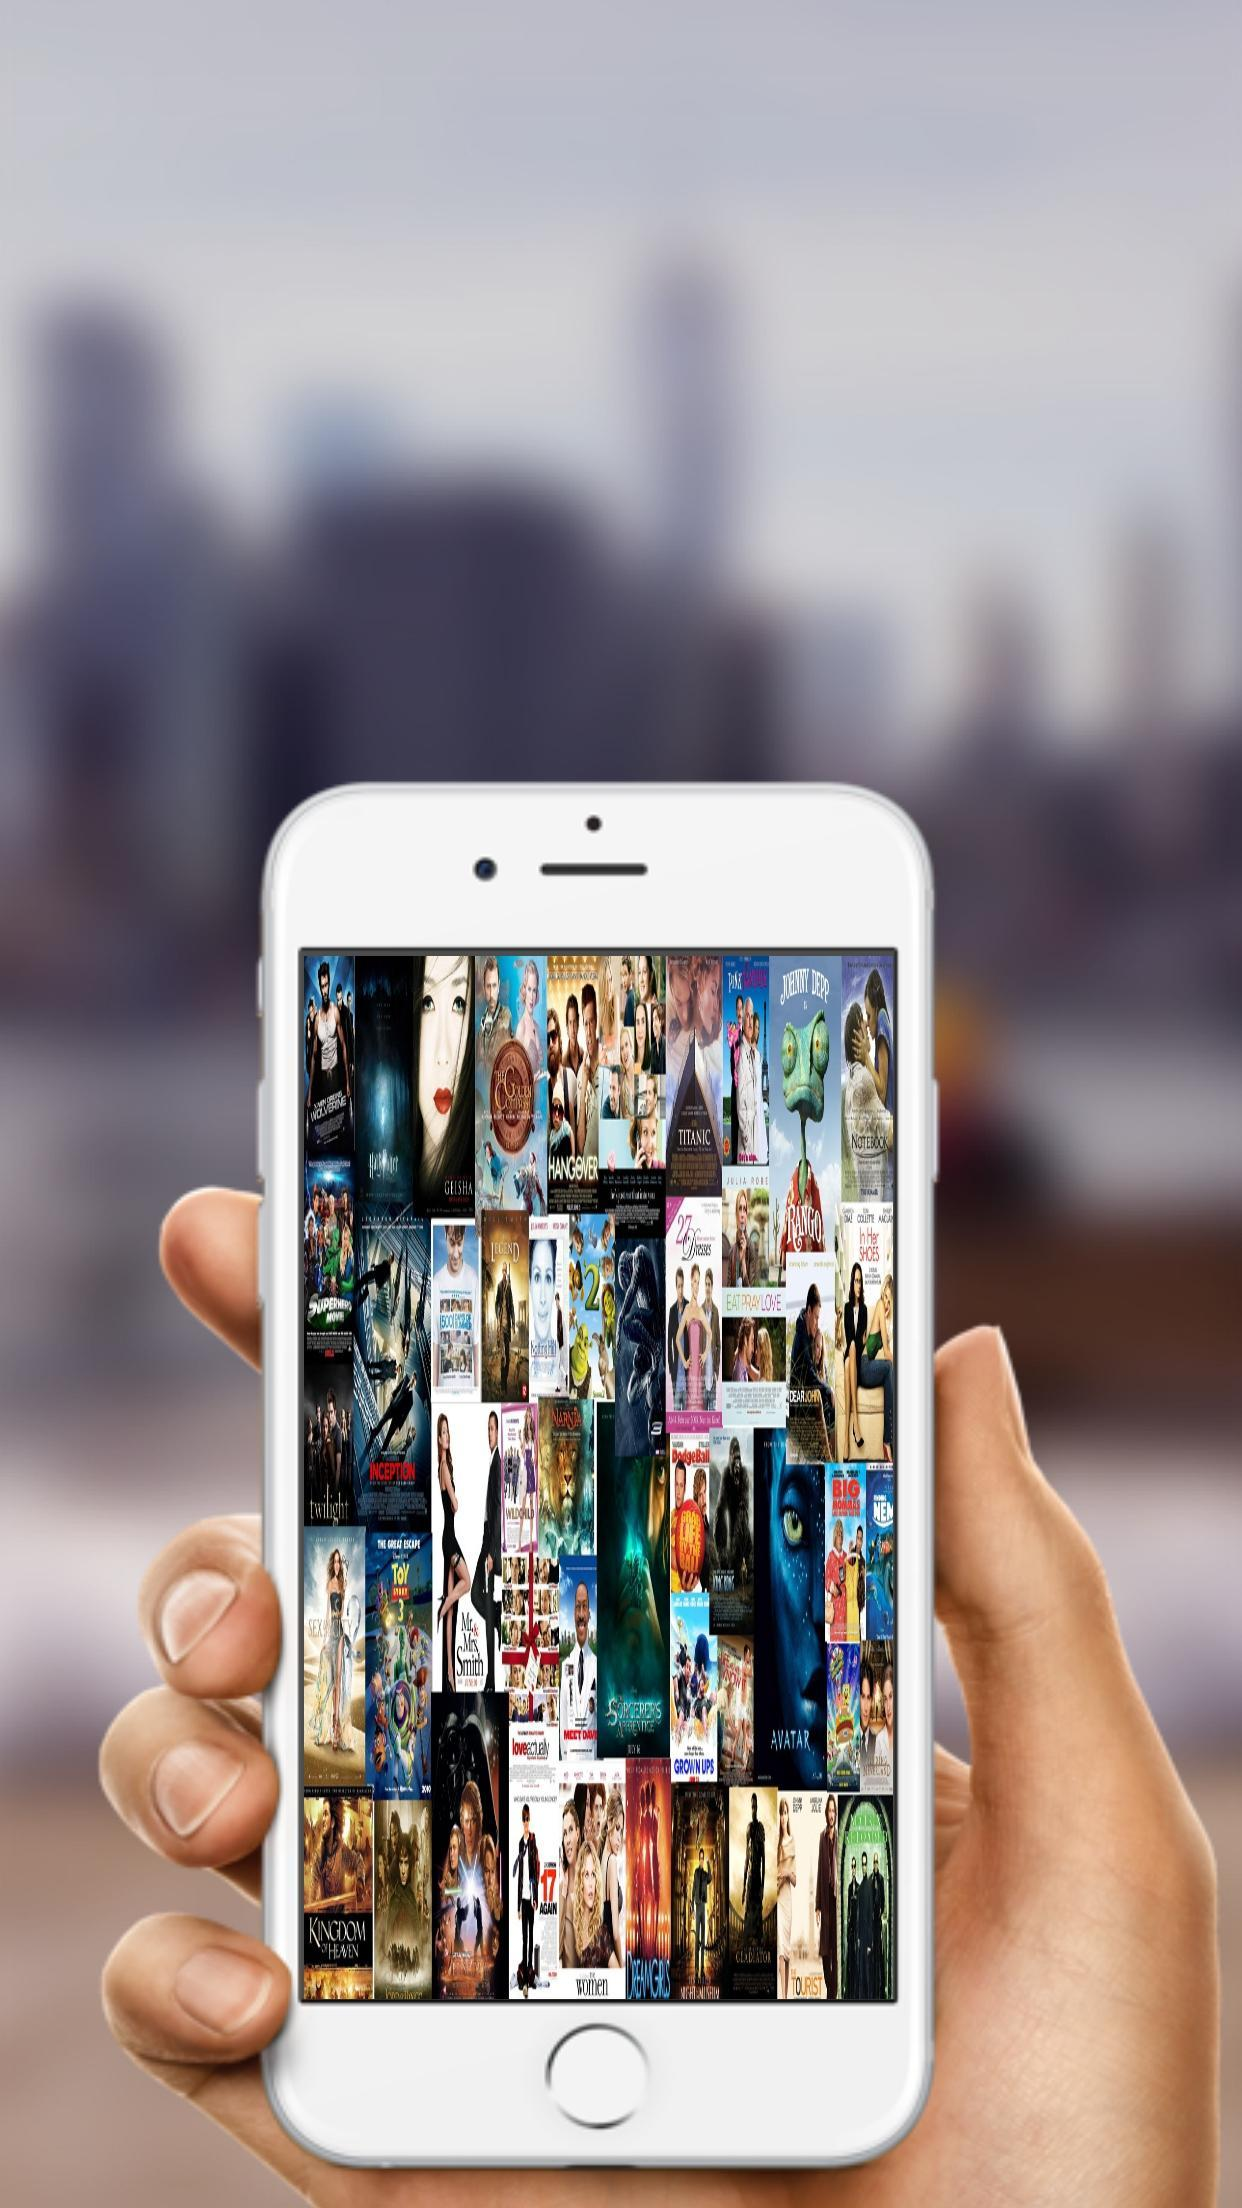 Yts(Home Of Movies) for Android - APK Download